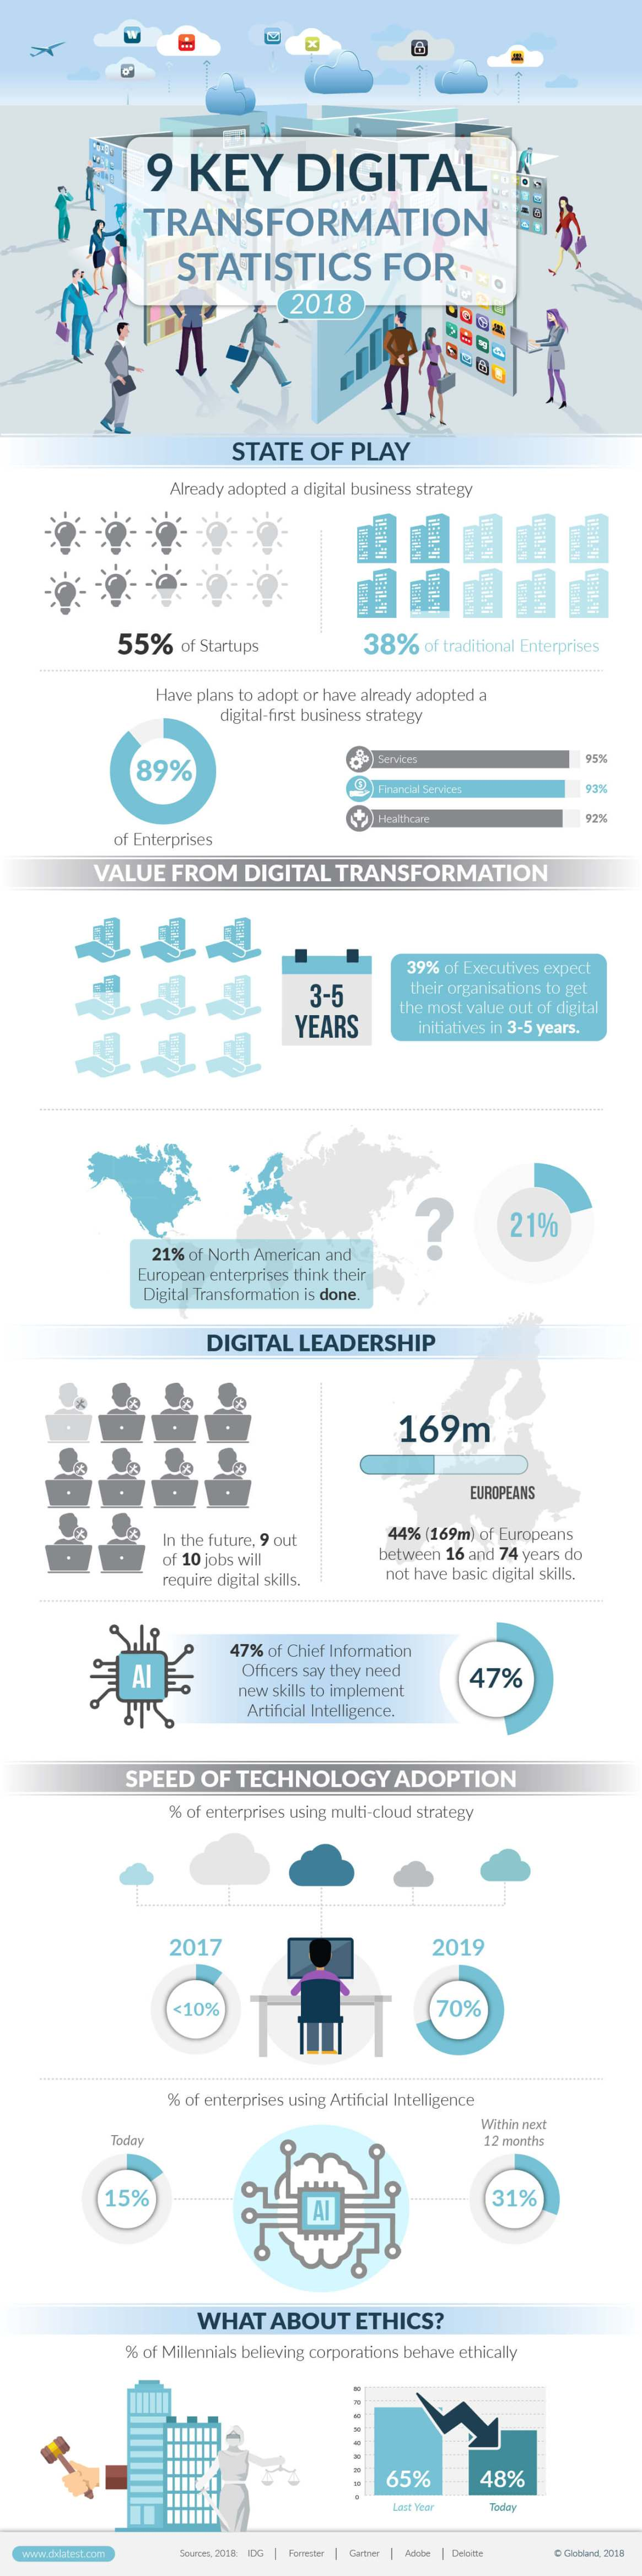 9 Key Digital Transformation Statistics for 2018